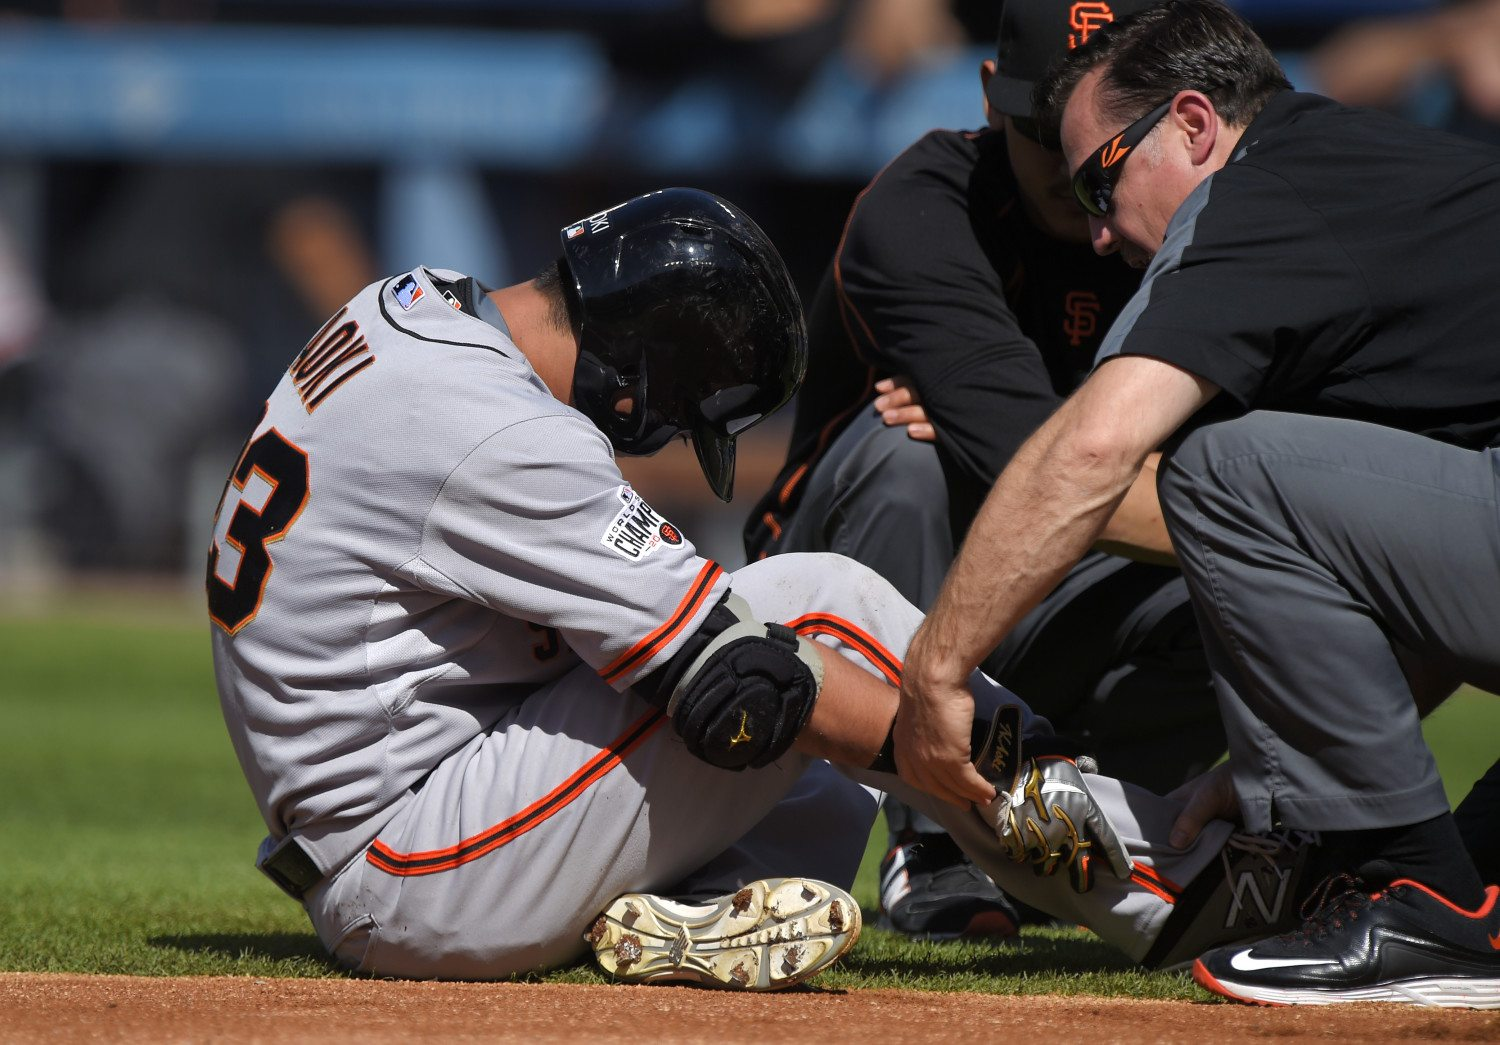 Giants' Nori Aoki, left, is checked by trainers after he was hit by a pitch on Saturday against the Los Angeles Dodgers. (AP Photo/Mark J. Terrill)